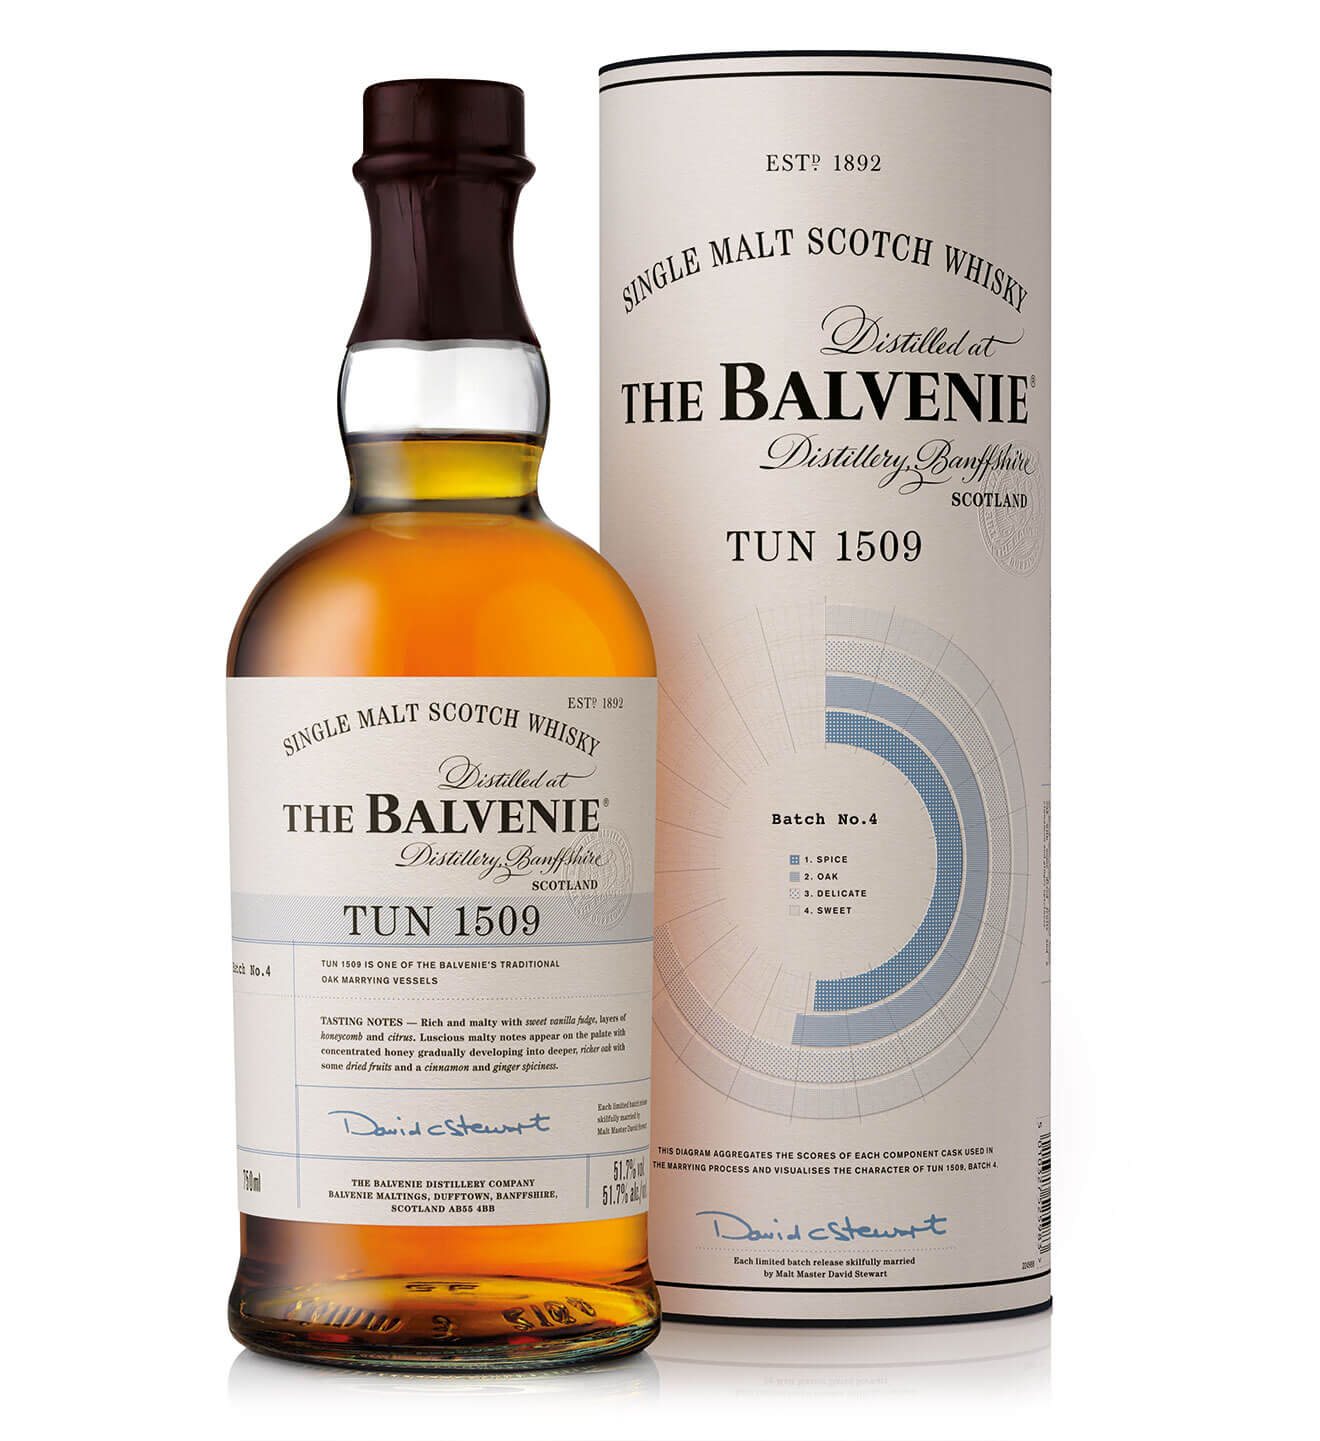 The Balvenie Tun 1509 Series, package and bottle